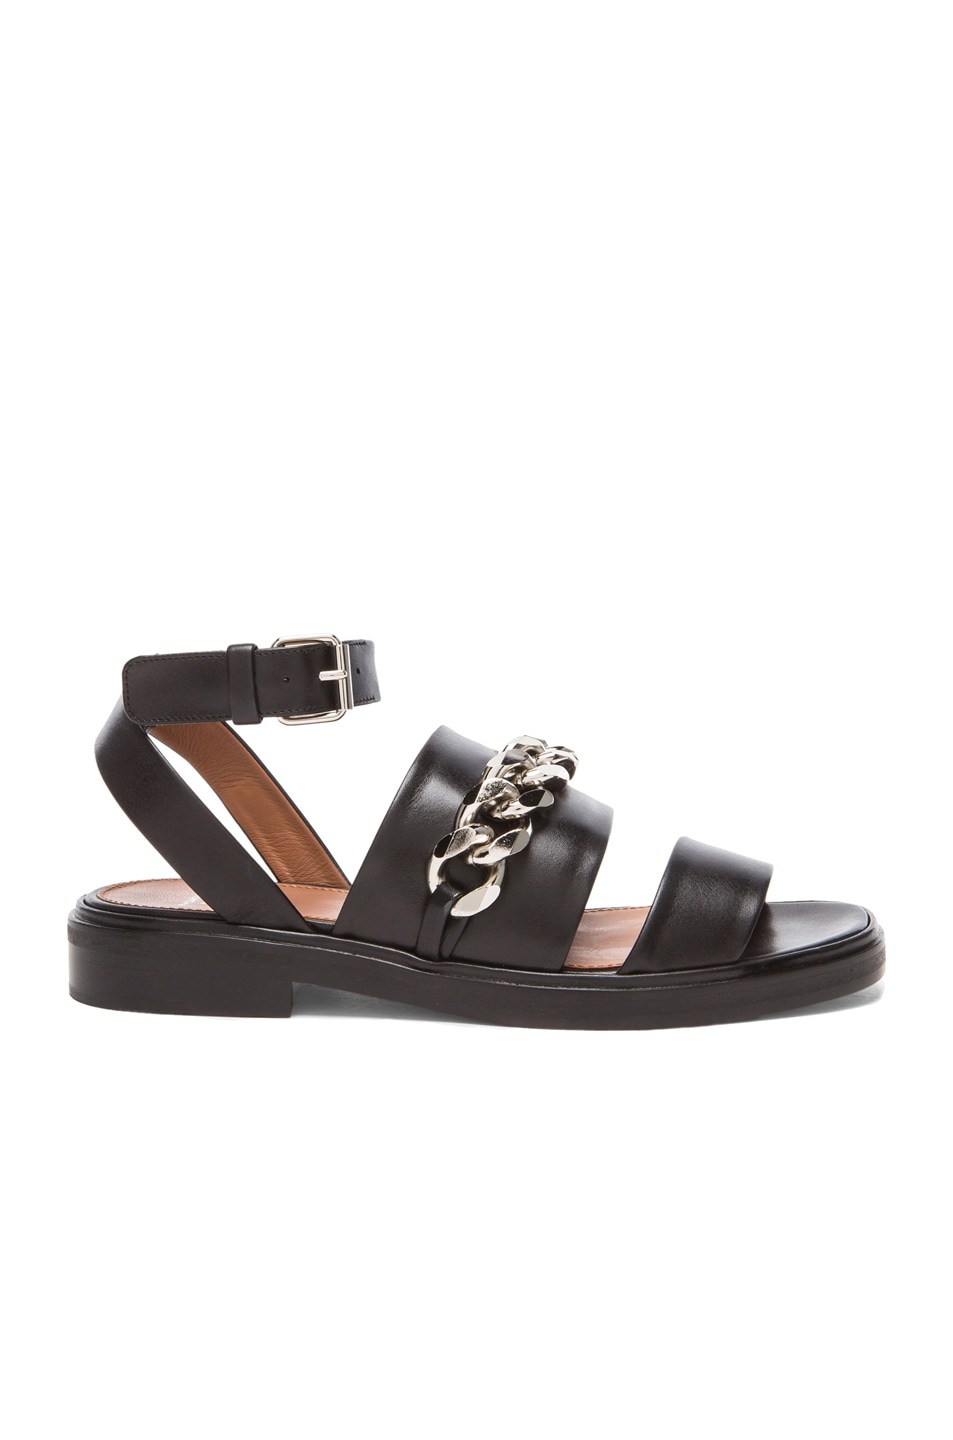 Image 1 of GIVENCHY Chain Leather Flat Sandals in Black